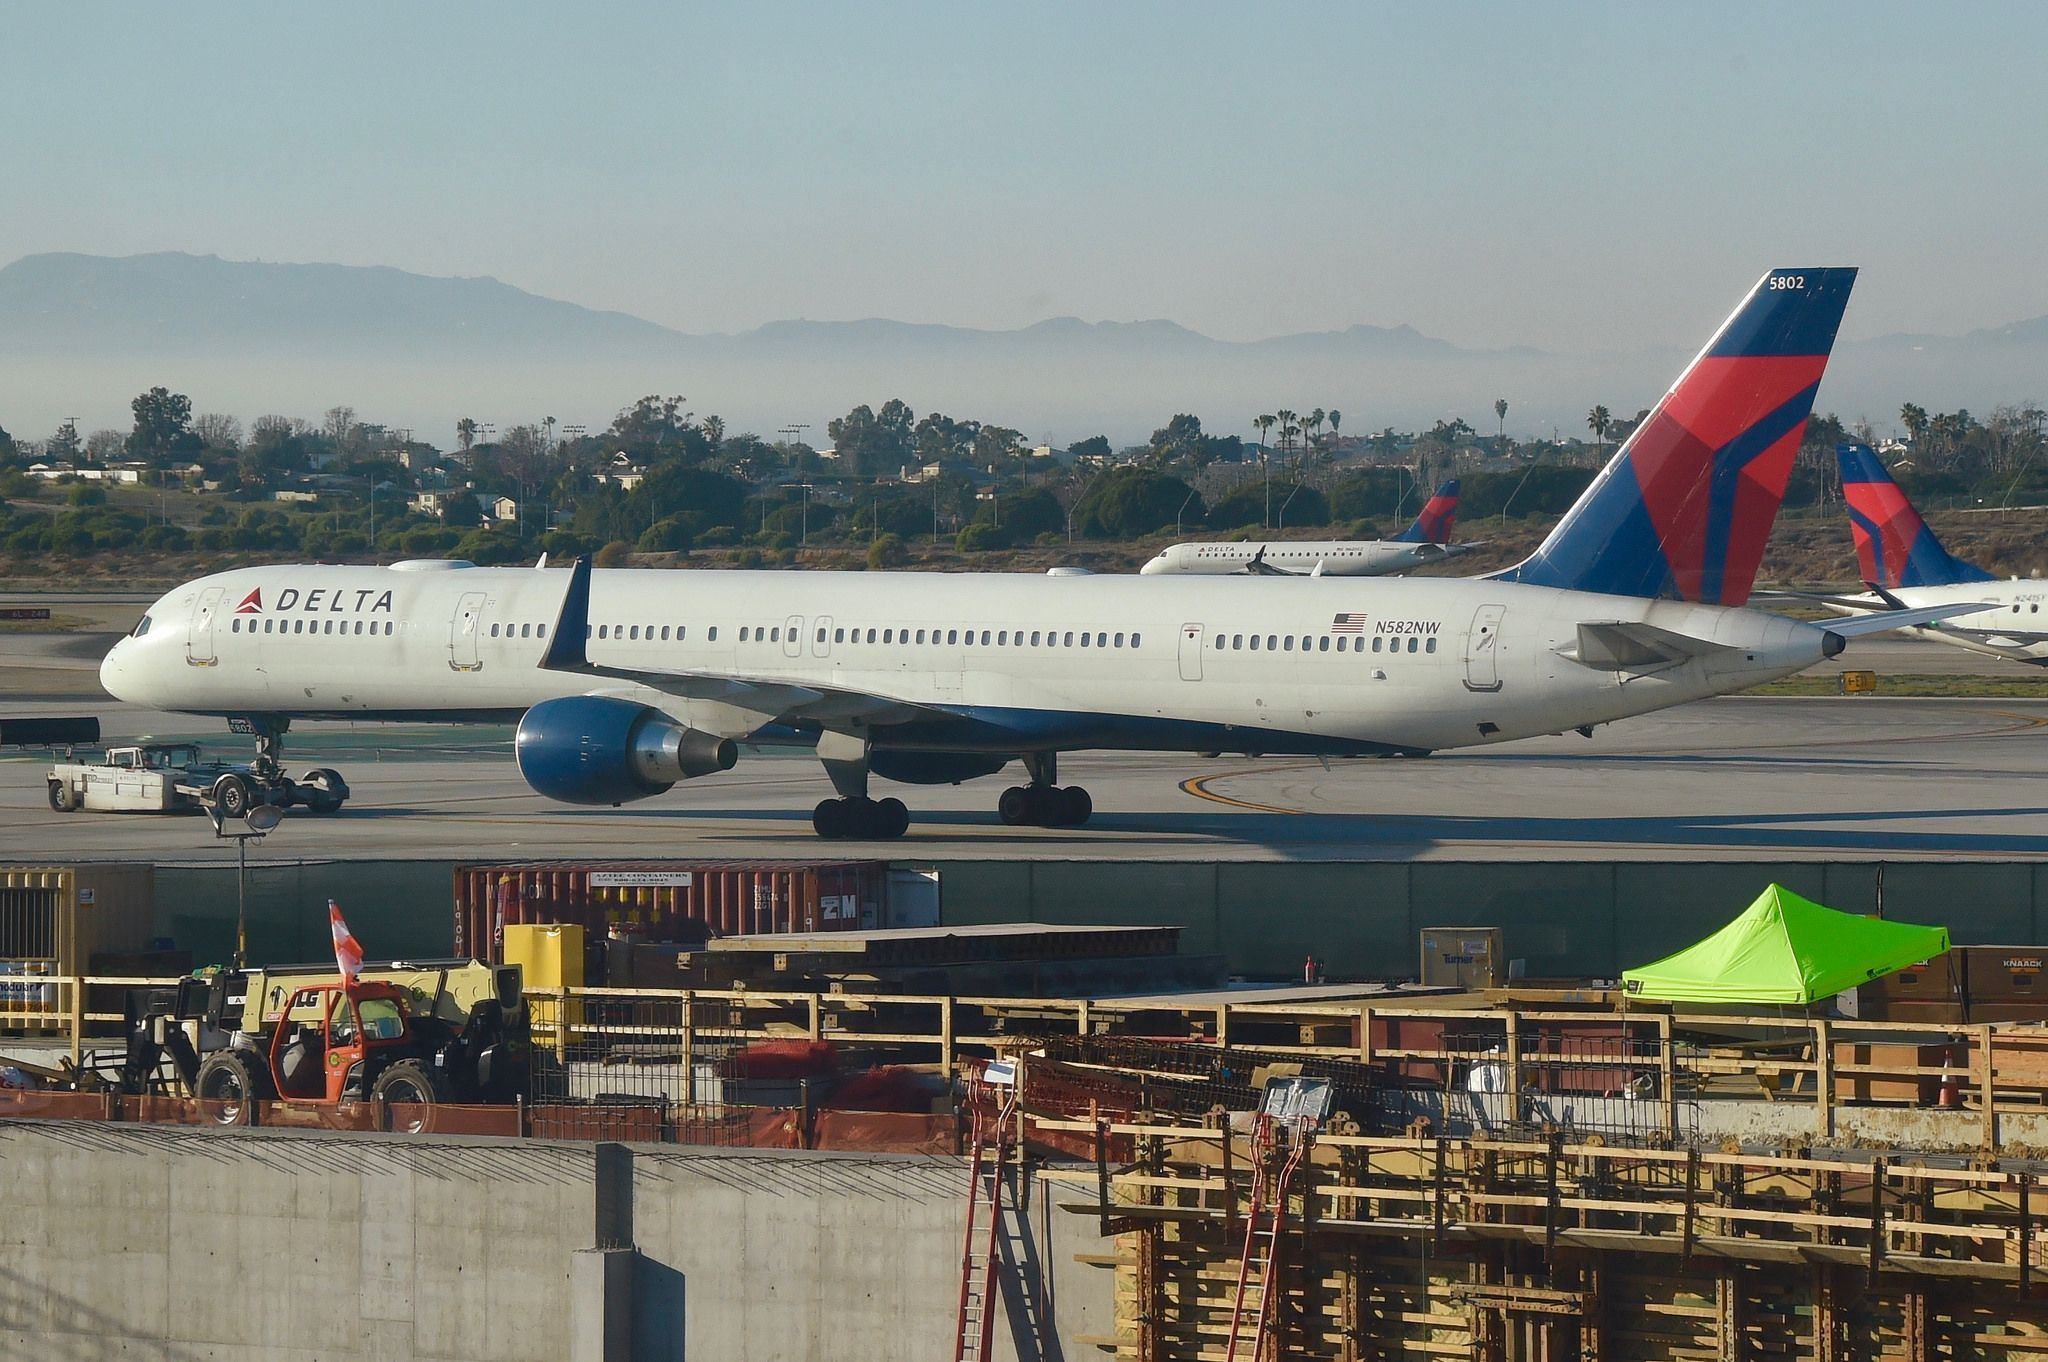 Delta Air Lines Boeing 757 300 N582nw Lax 31 01 2018 Boeing